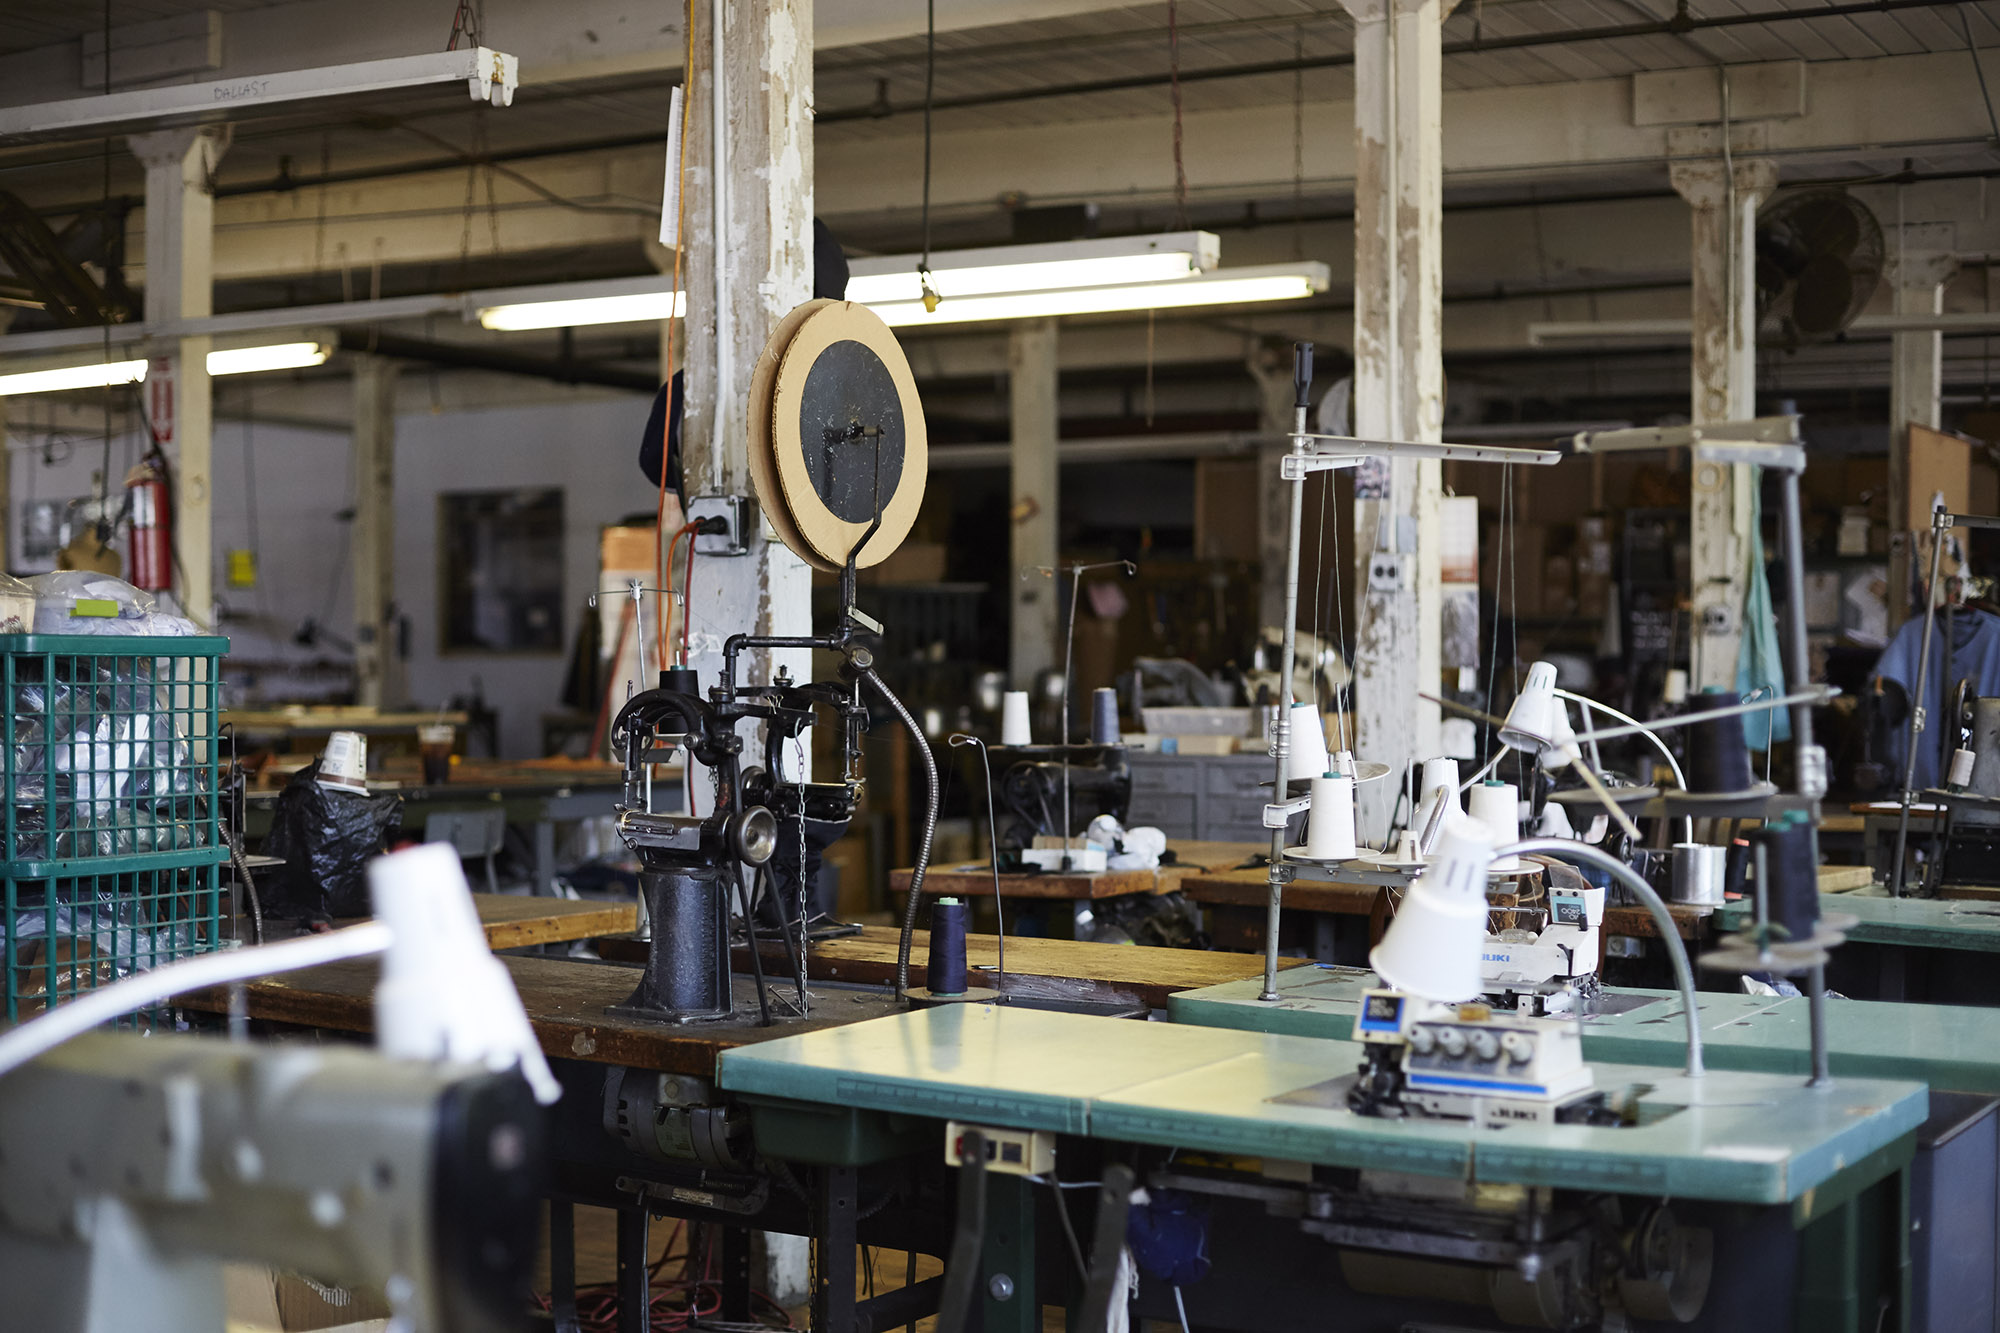 The collective work space at Knickerbocker Manufacturing Co.